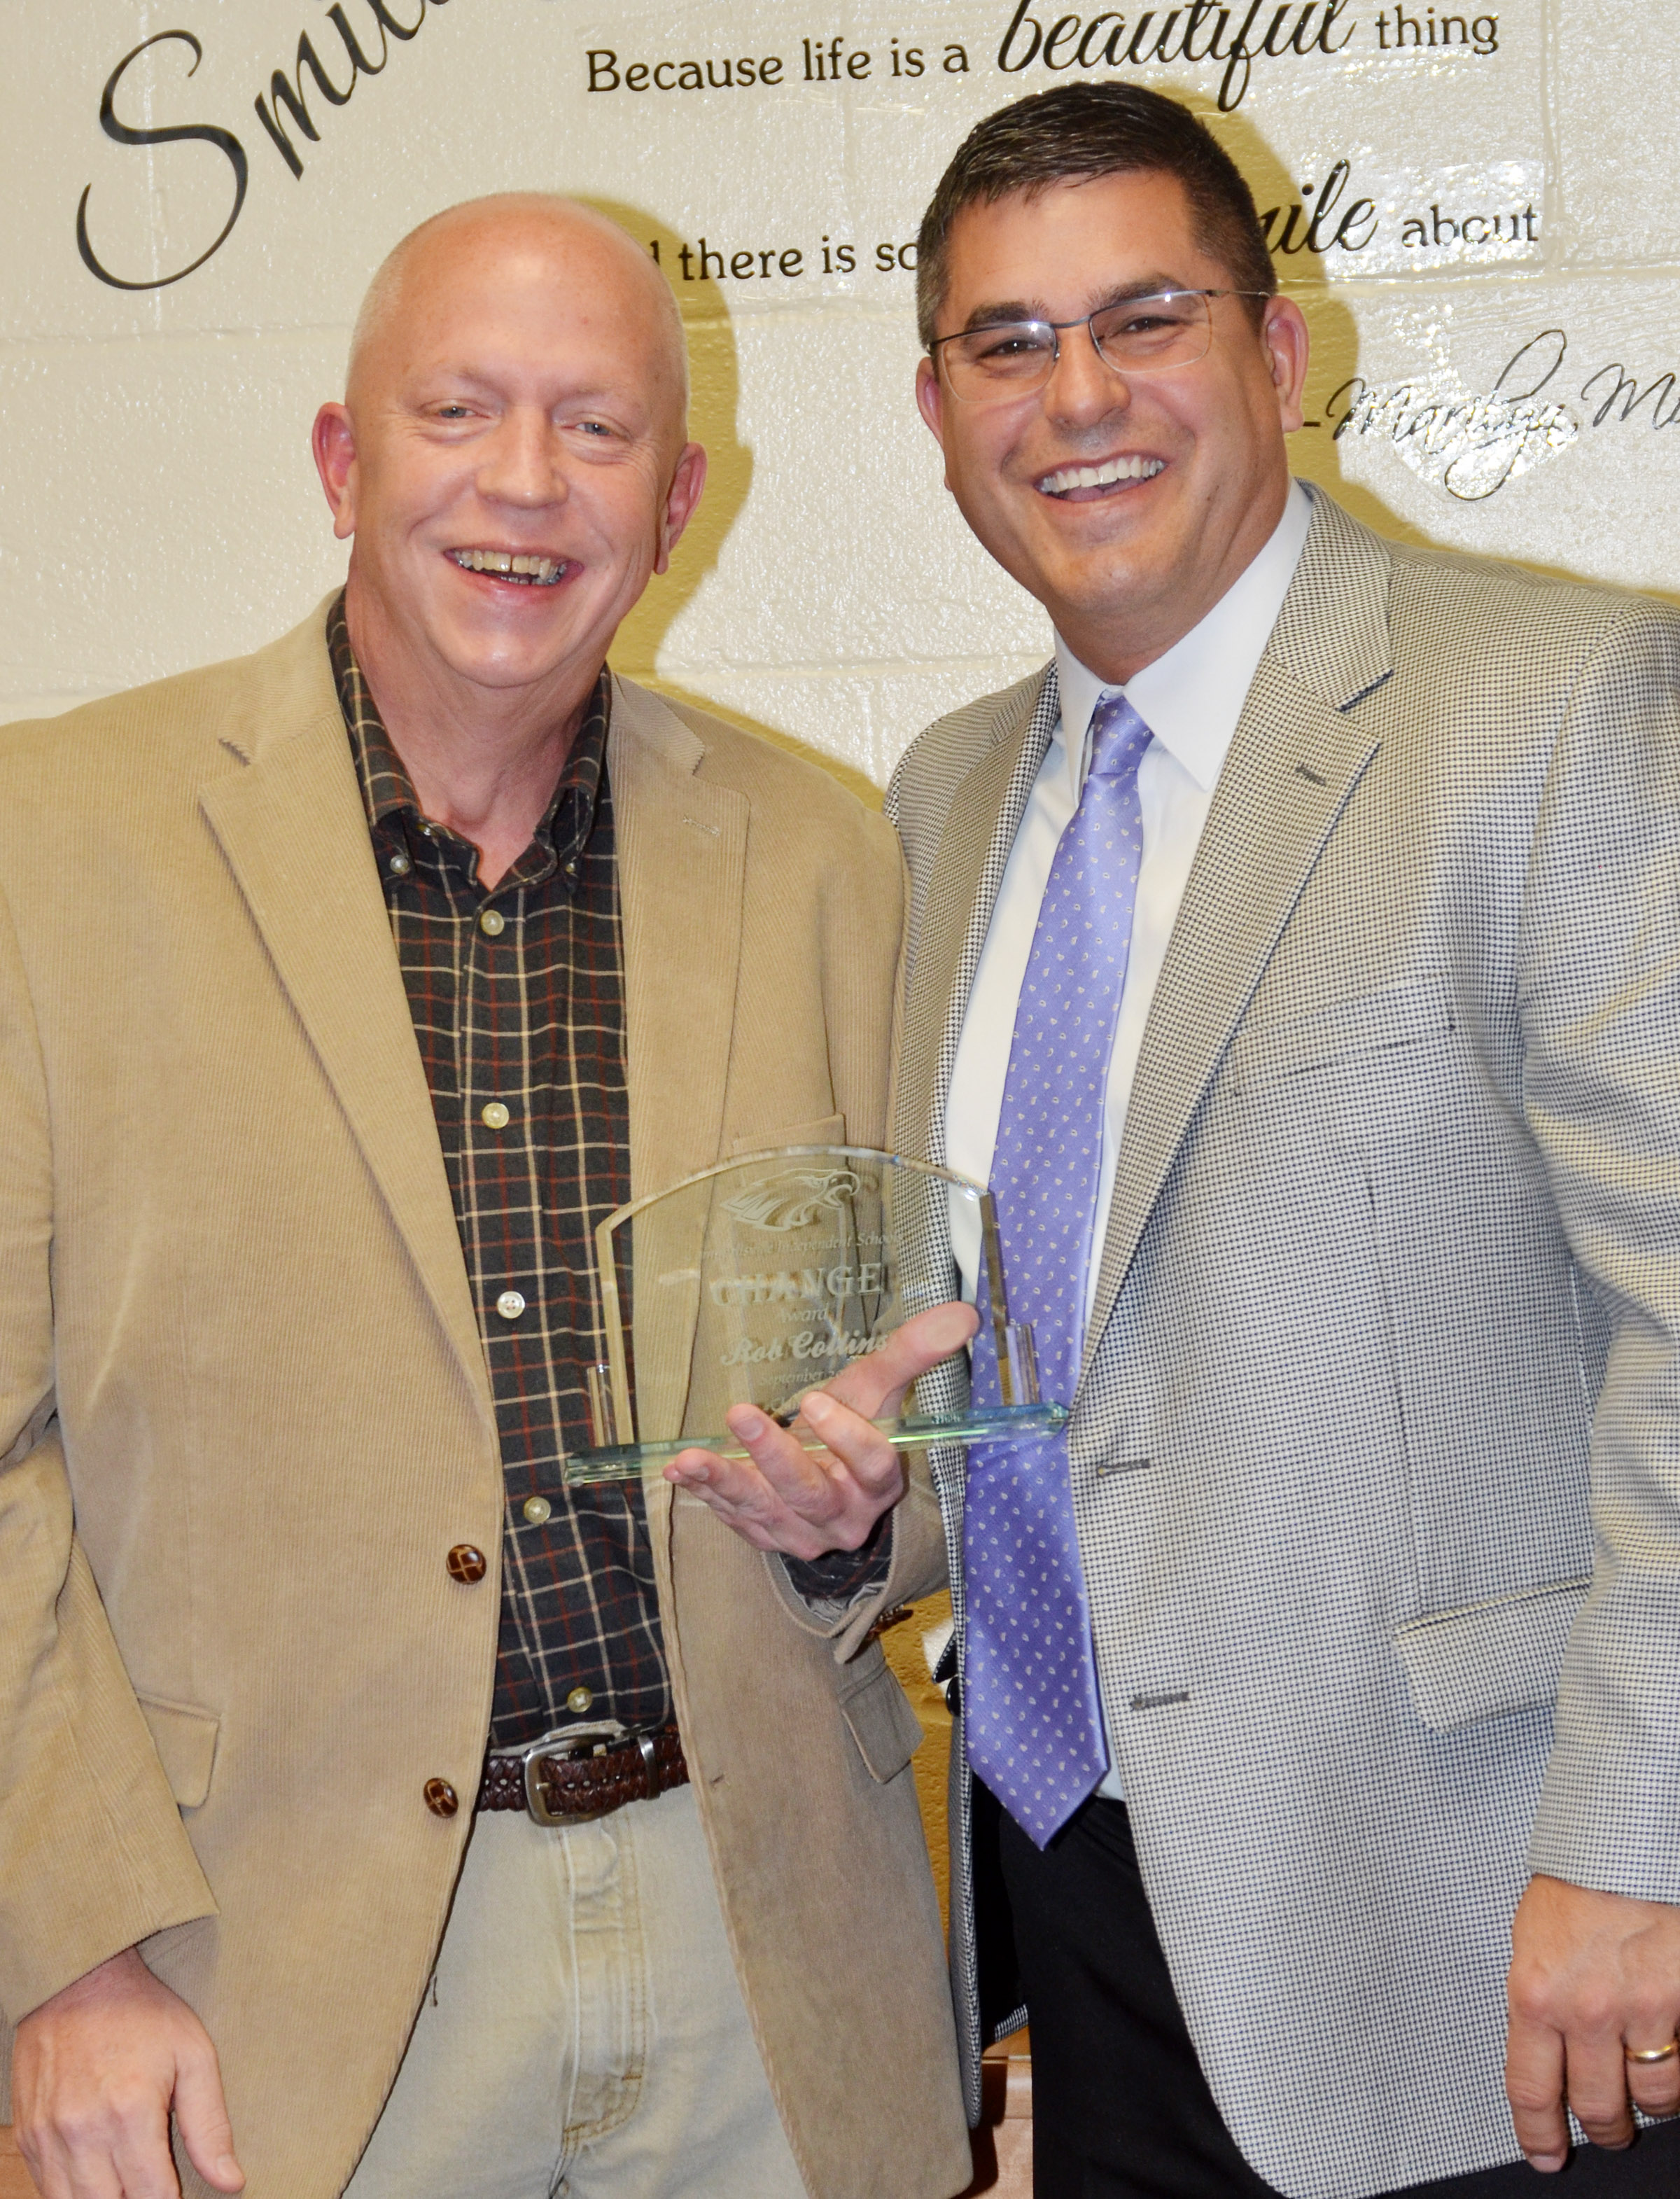 Campbellsville Independent SchoolsSuperintendent Kirby Smith, at right, honors Rob Collins, a radio personality at Q-104, with the community Change Award.